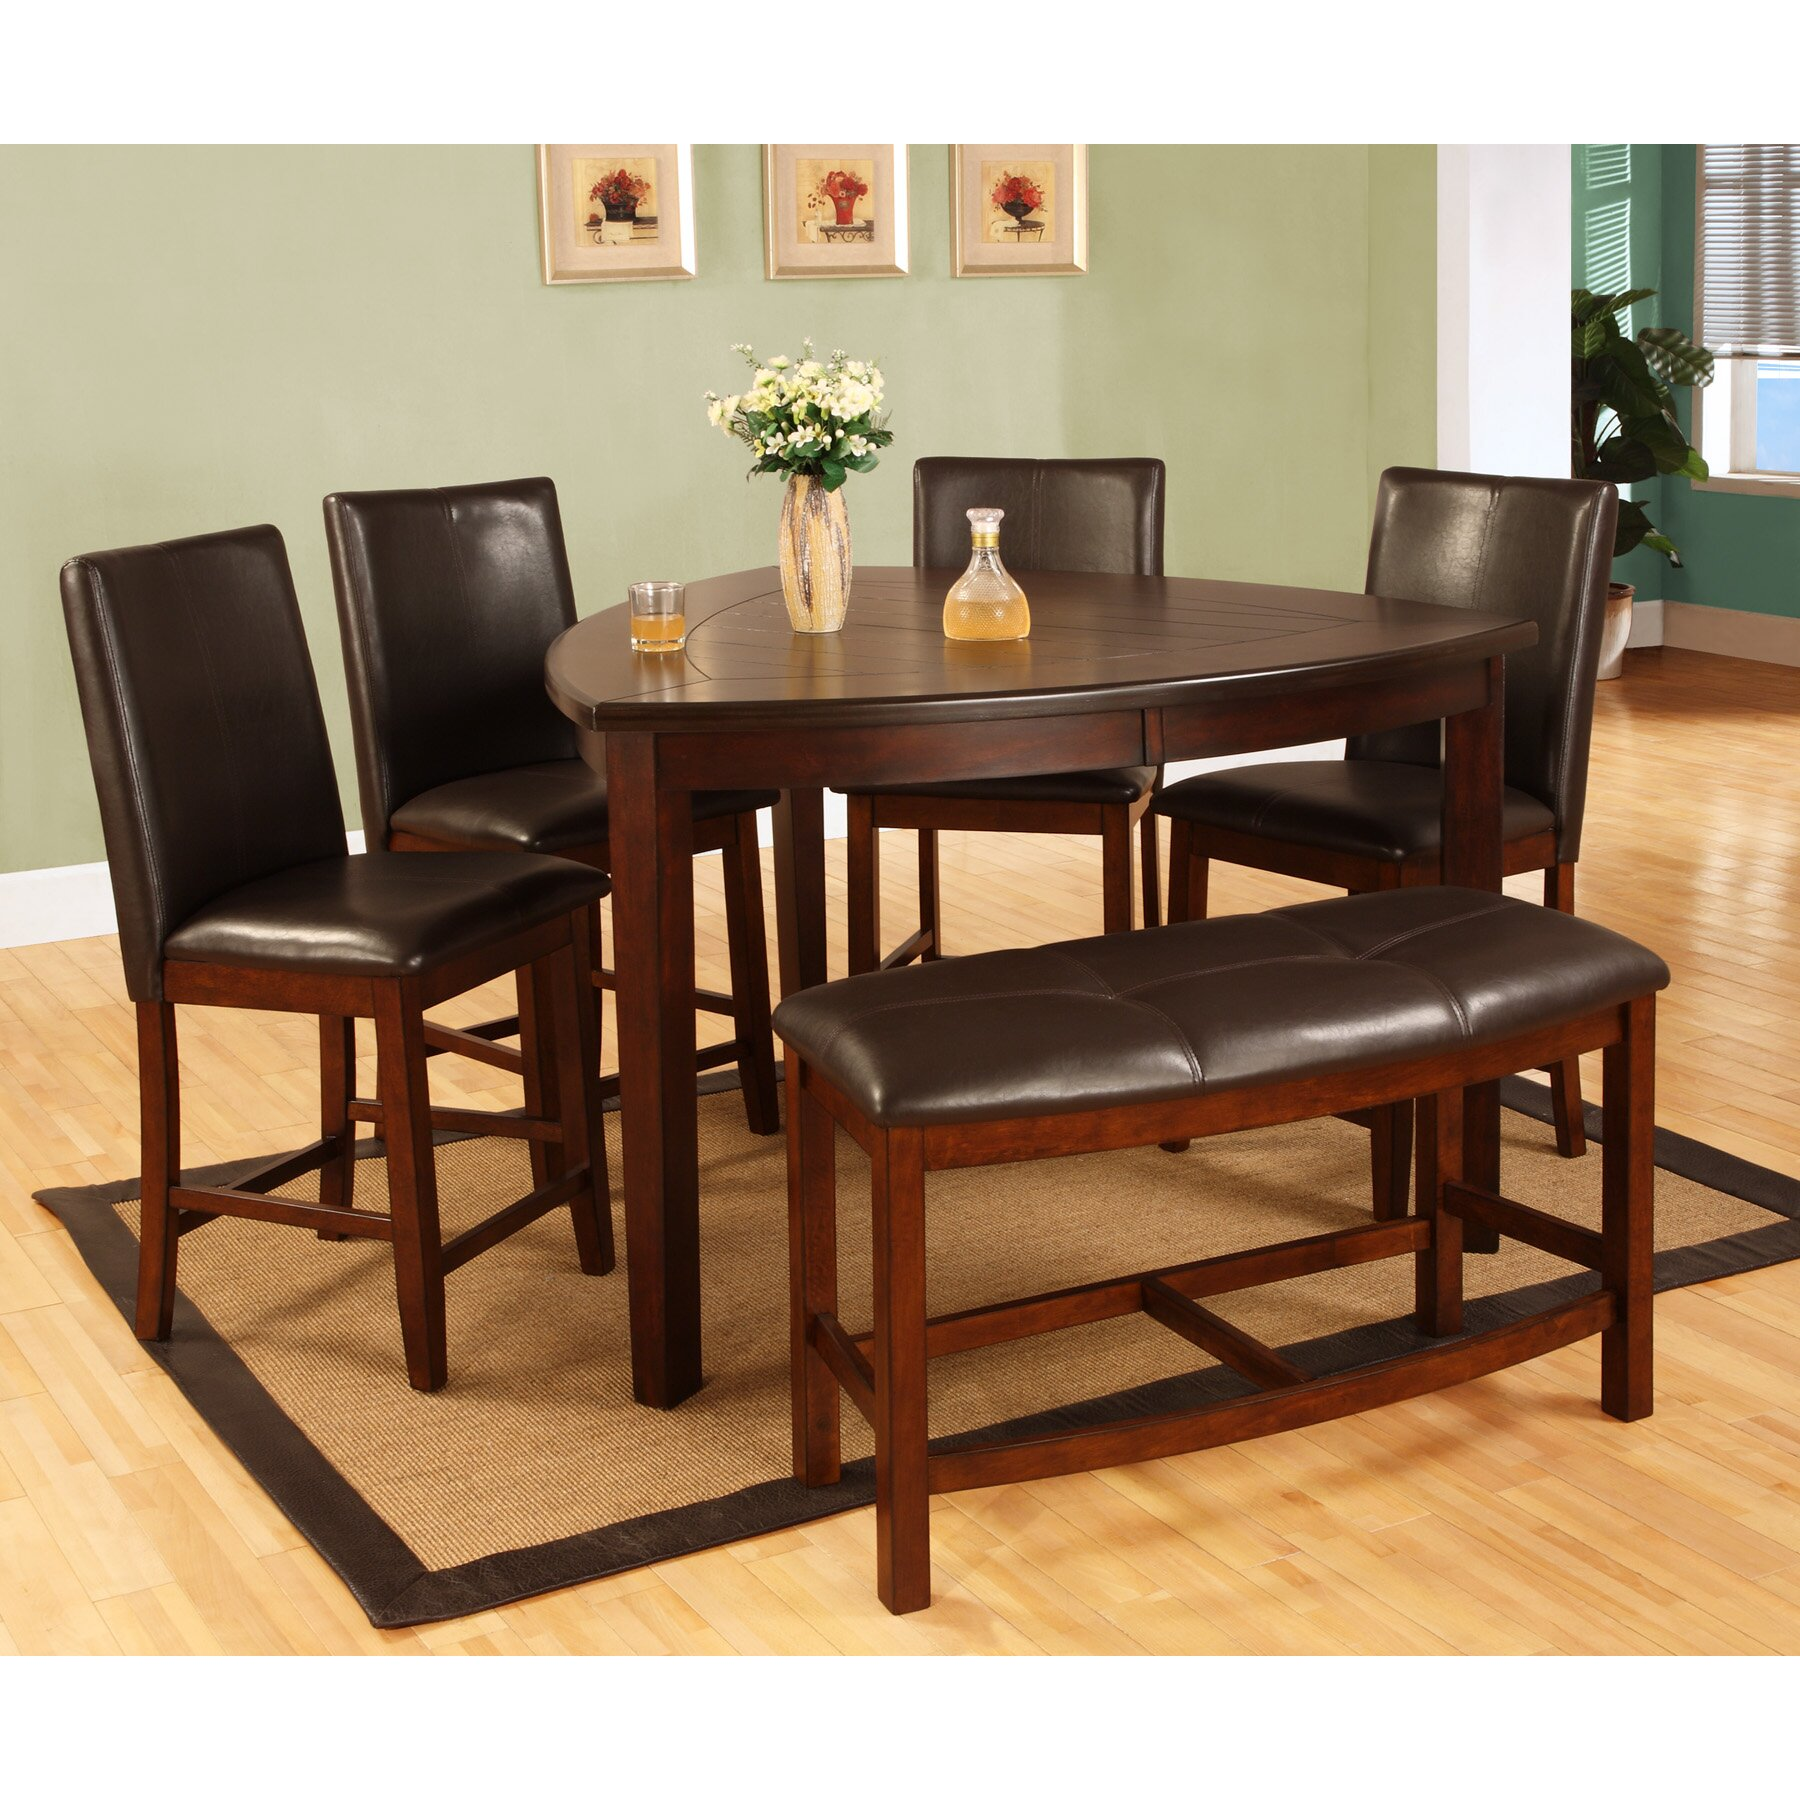 Best quality dining room furniture furniture contemporary for Best quality furniture